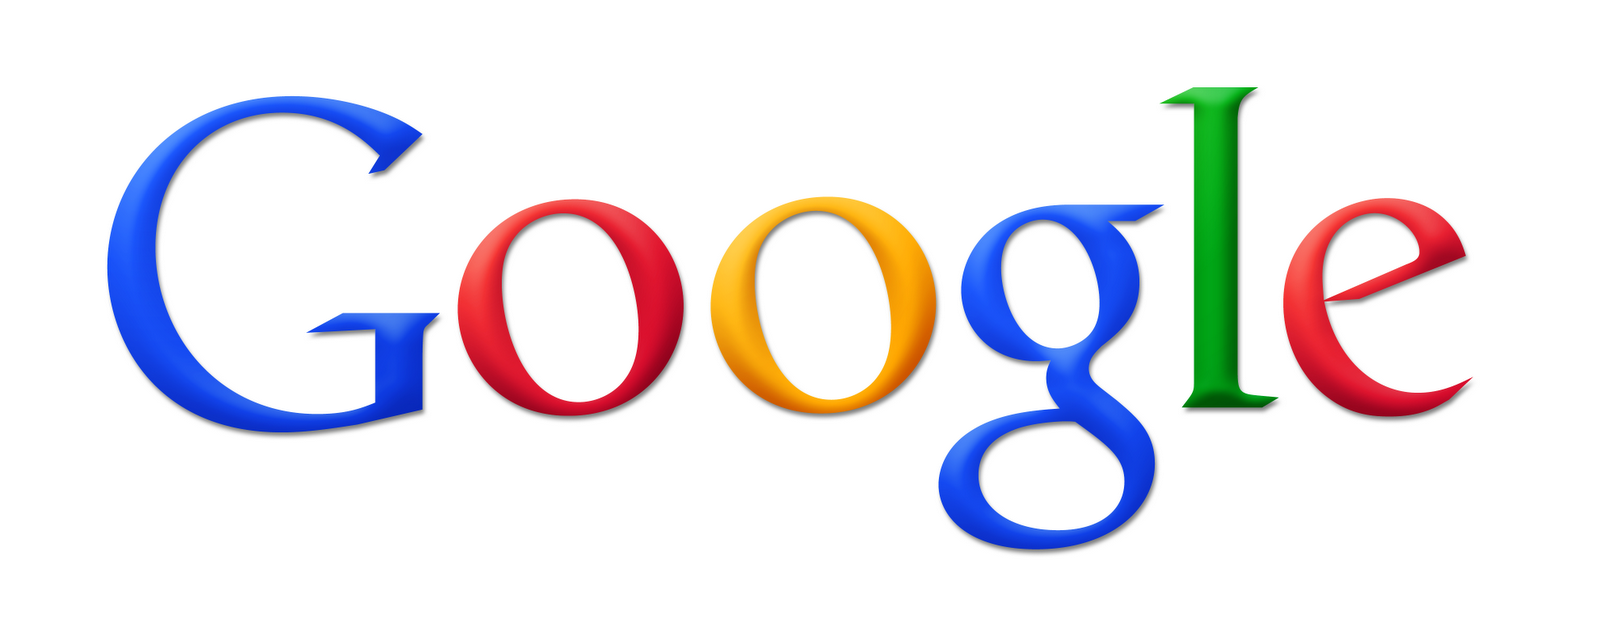 [The Google logo]